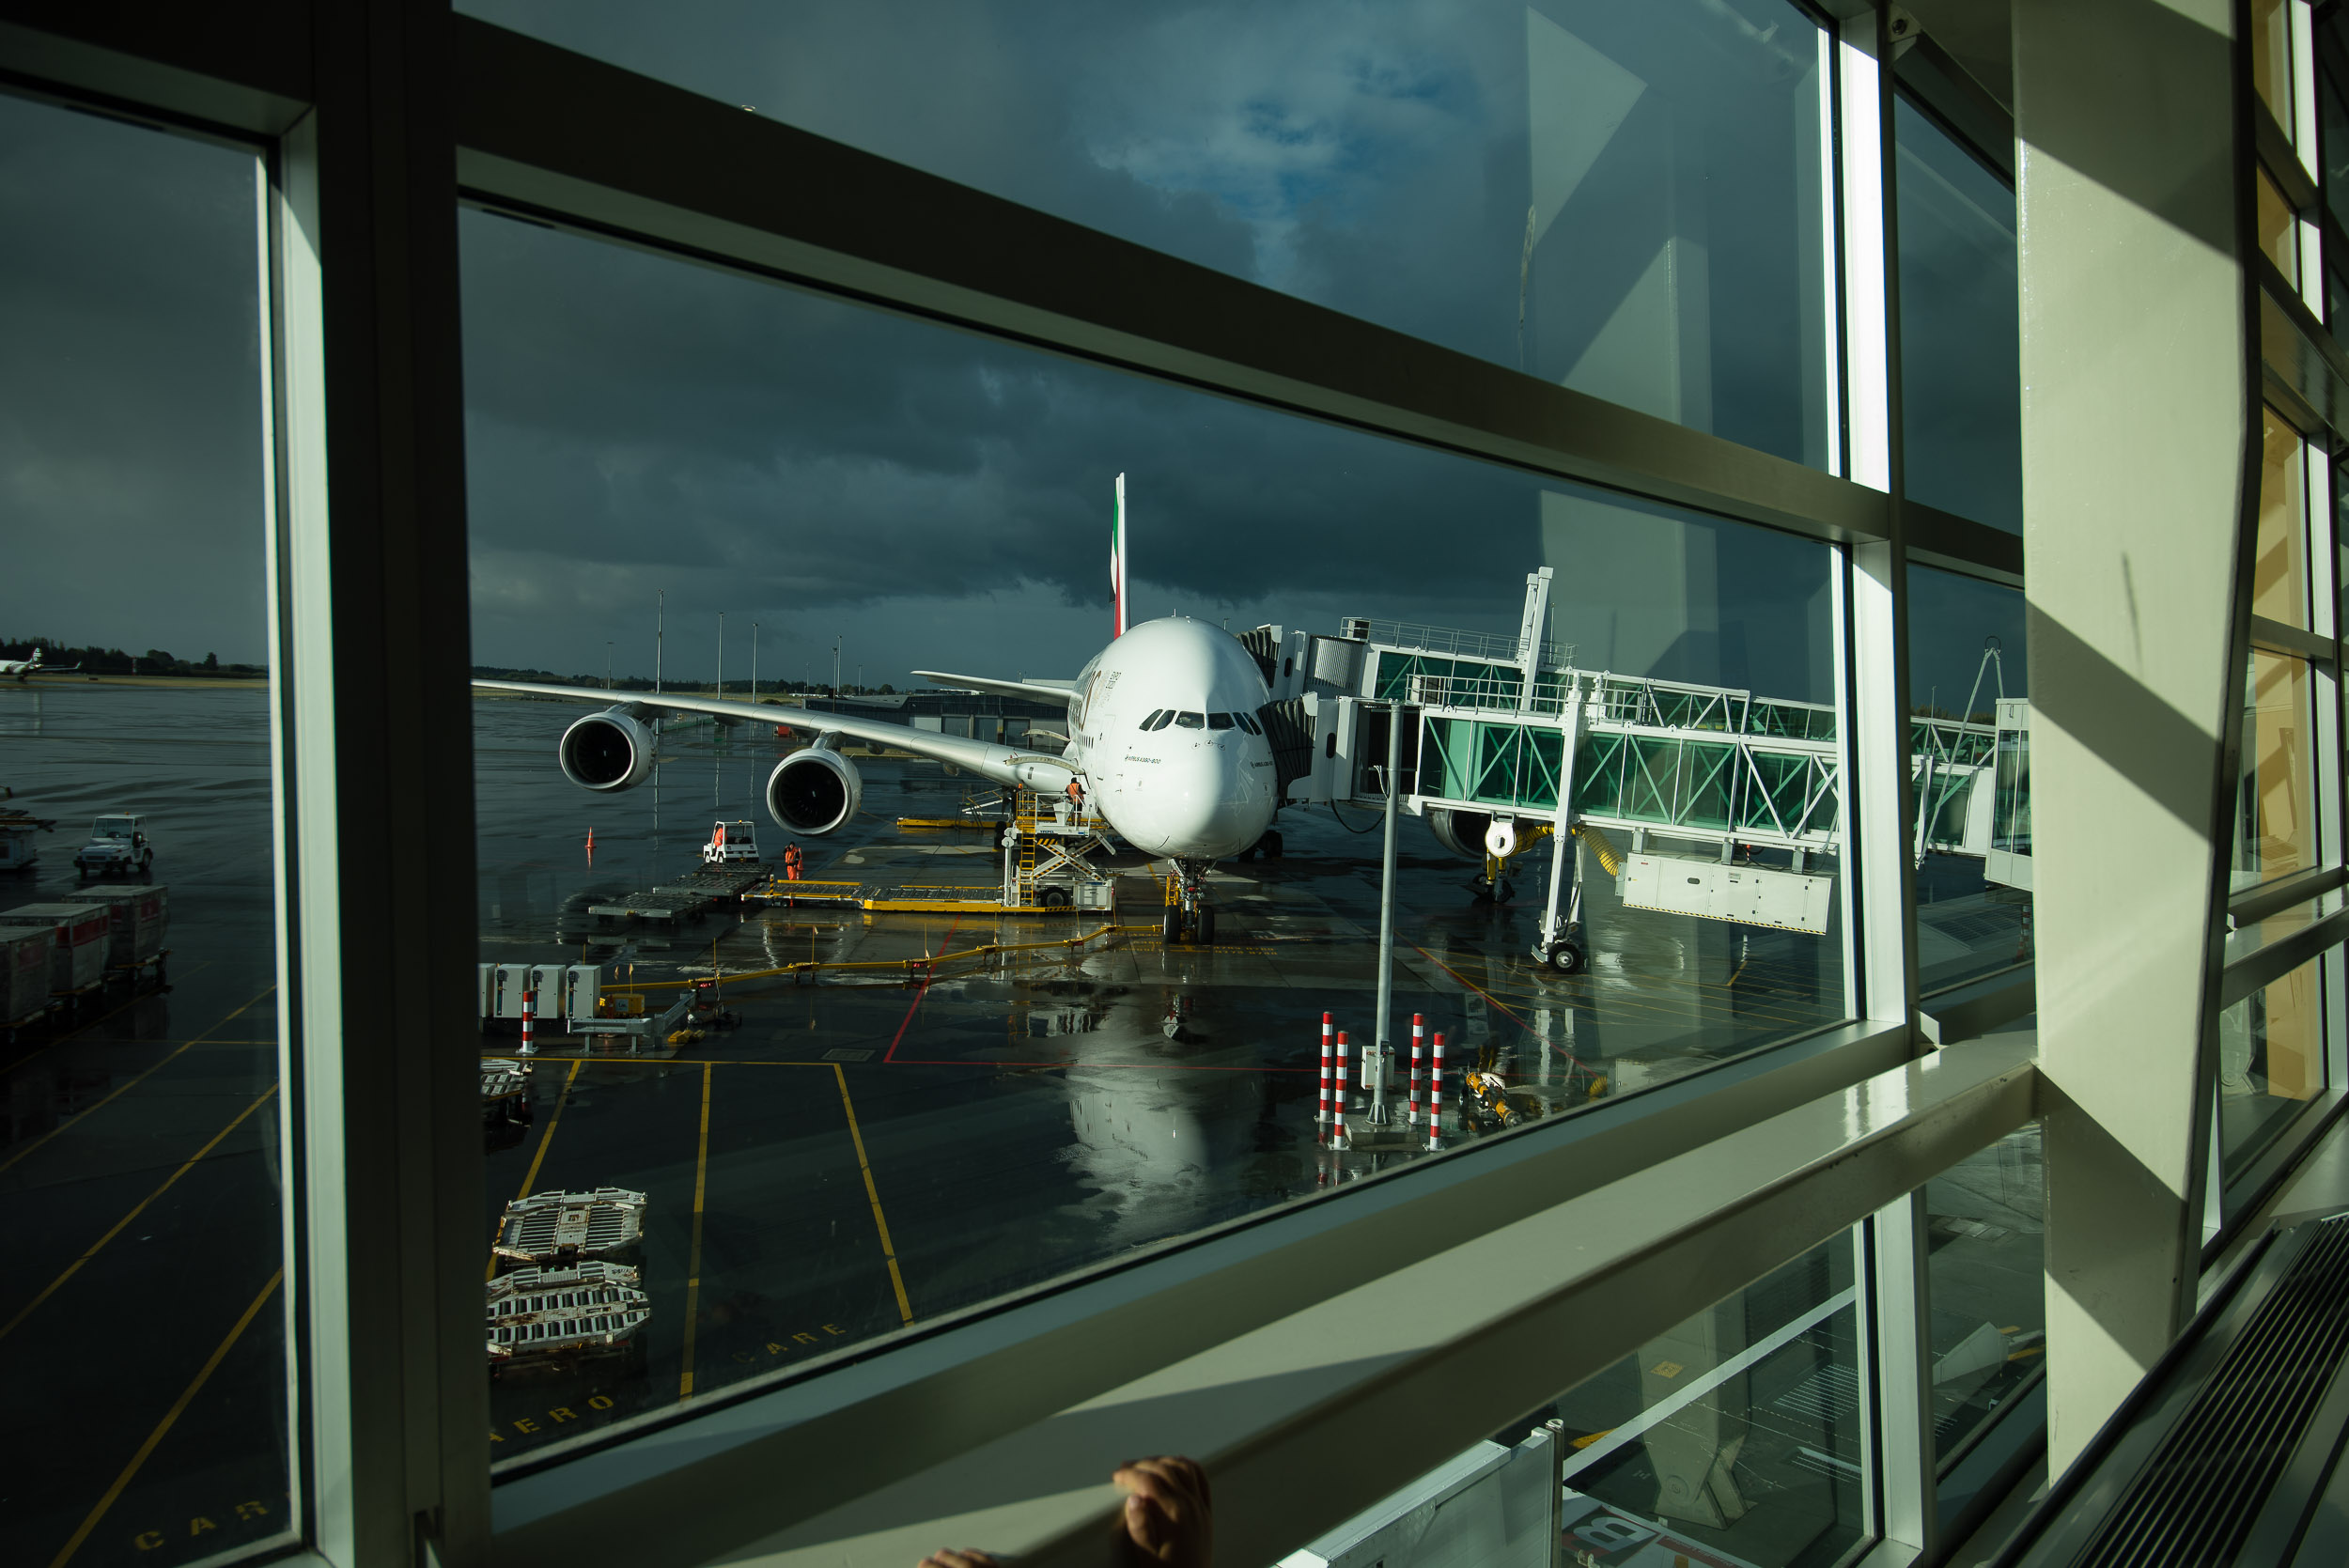 The awesome A-380 at Christchurch airport. Even today, Finn can't stop talking about it.